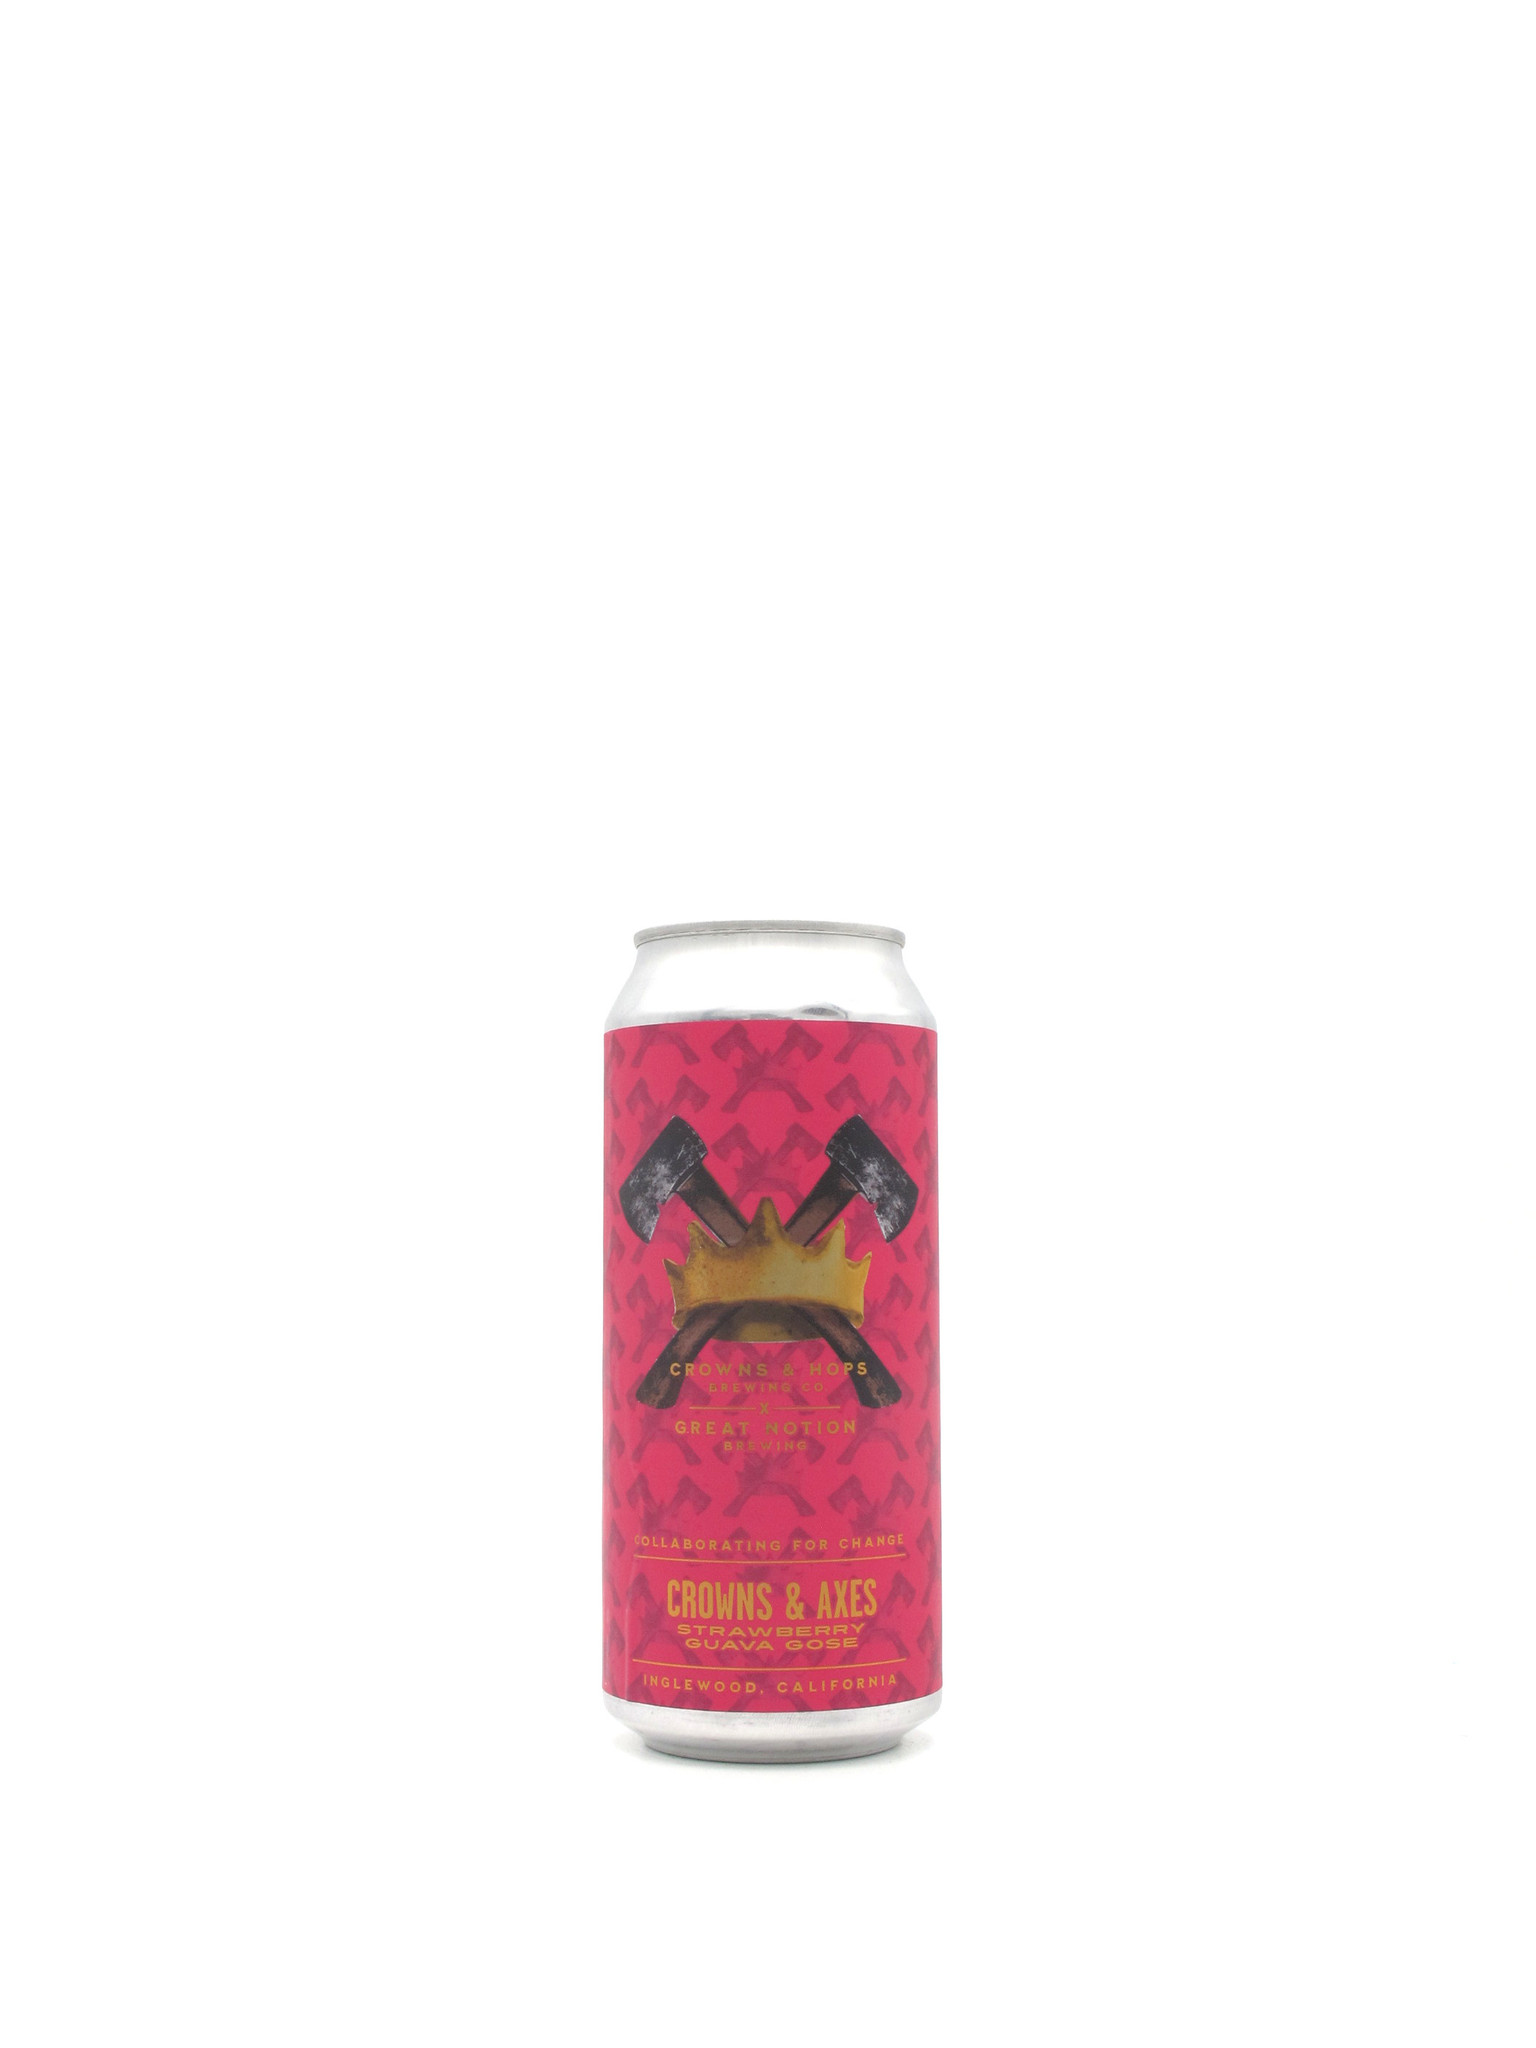 """Crowns & Hops Crowns & Hops / Great Notion  Brewing Co. Crowns & Axes"""" 16oz"""